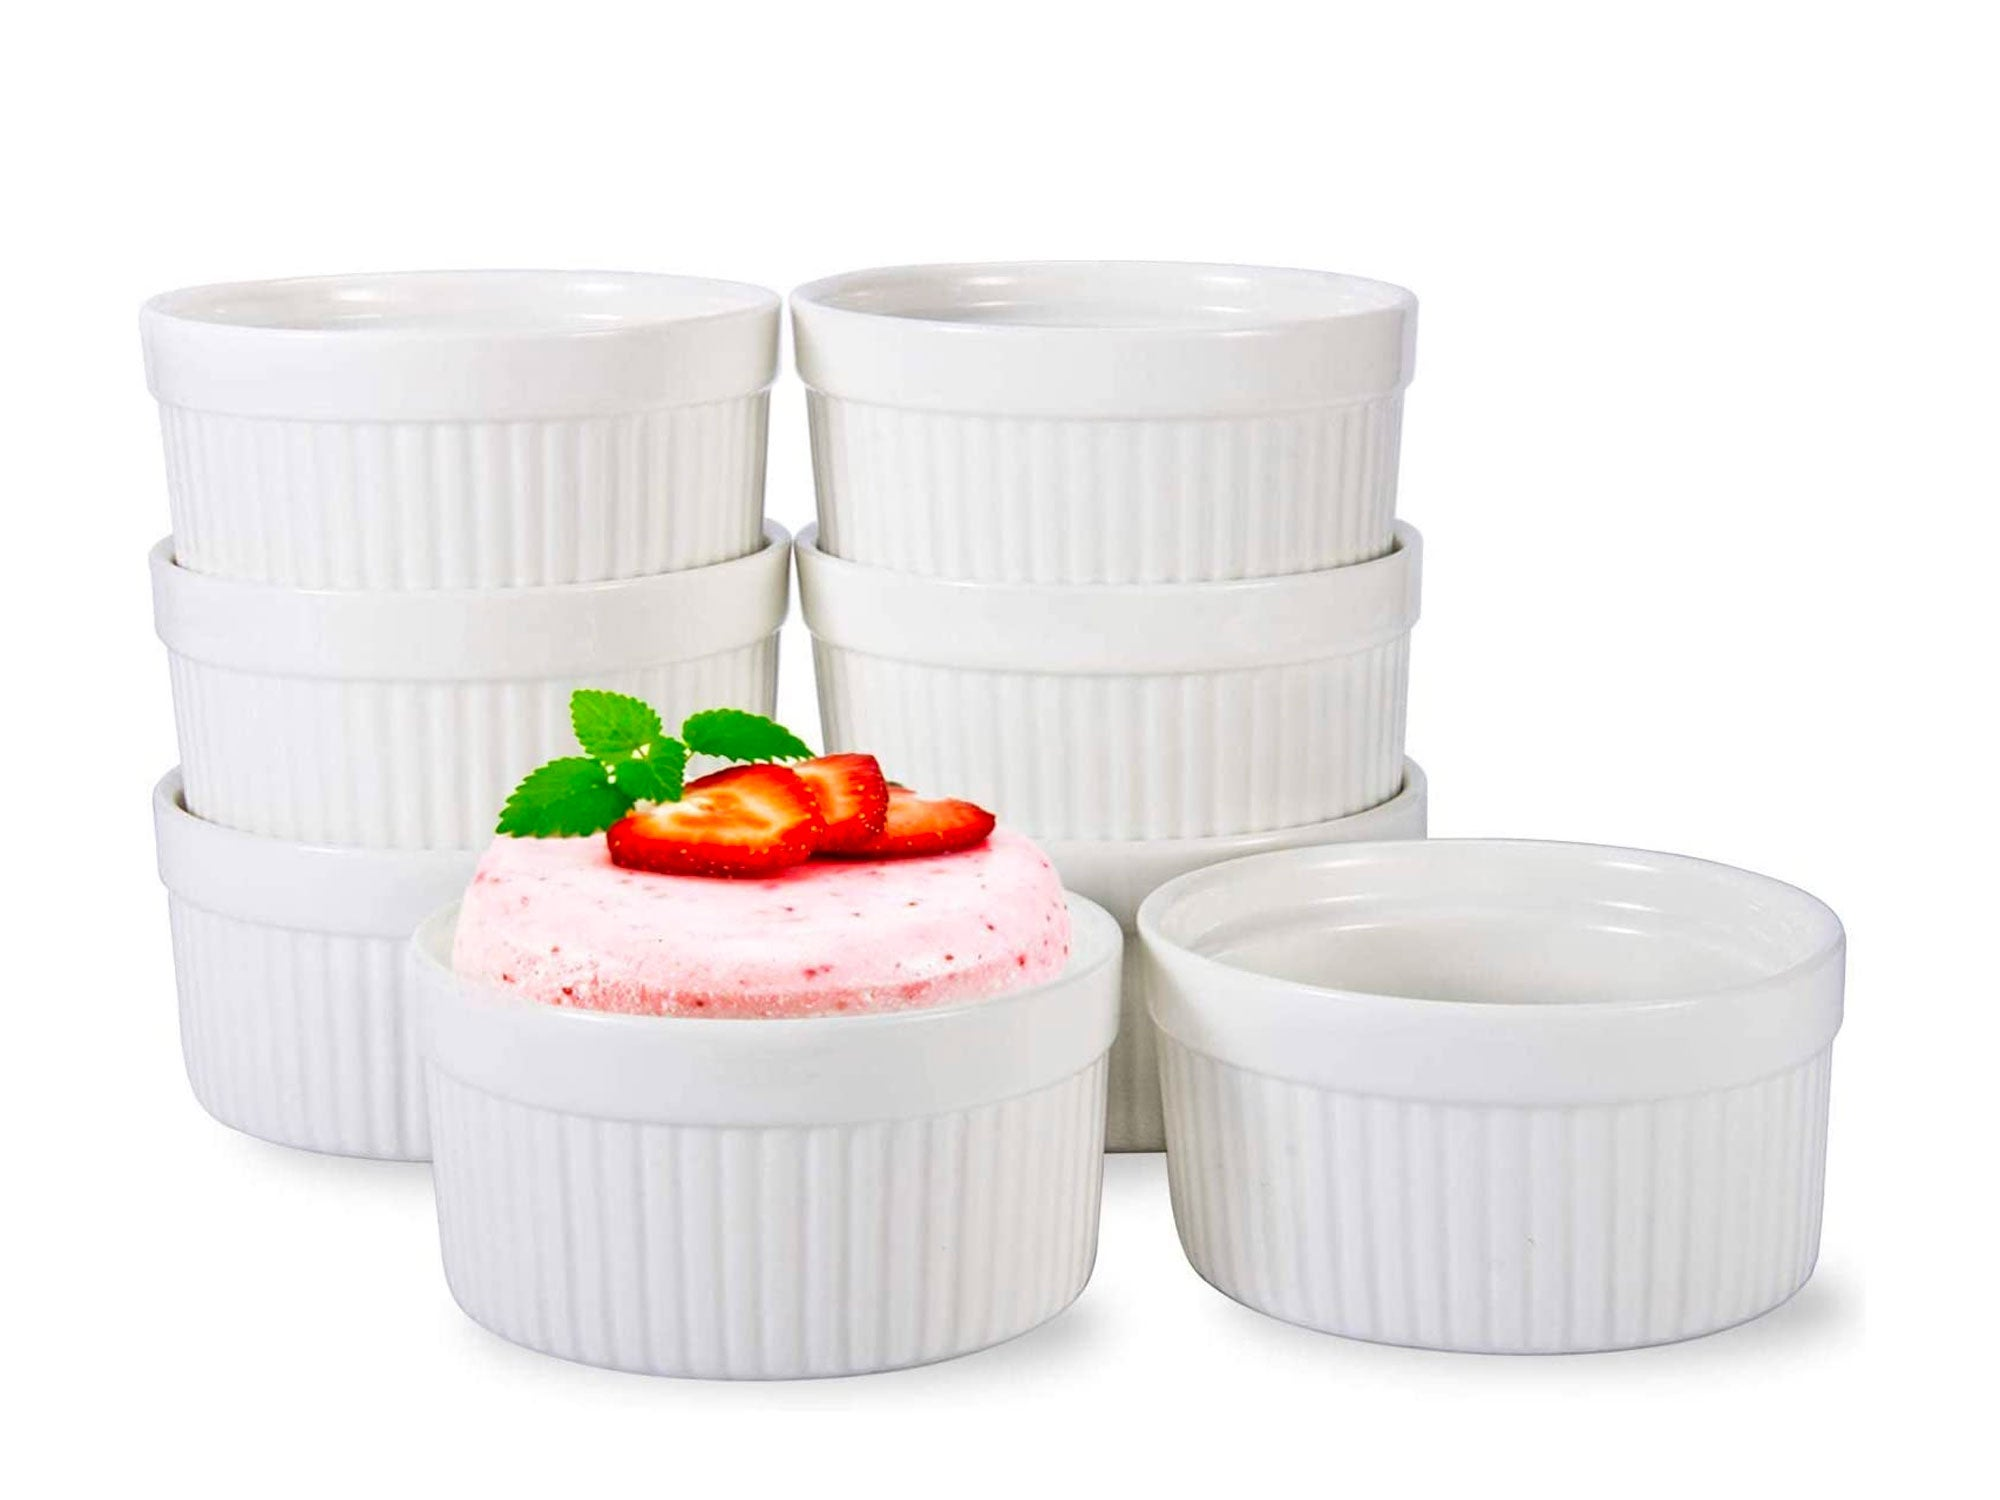 6 OZ Ramekin Bowls 8 PCS,Bakeware Set for Baking and Cooking, Oven Safe Sleek Porcelain White Ramikins for Pudding, Creme Brulee, Custard Cups and Souffle Small instant table tray